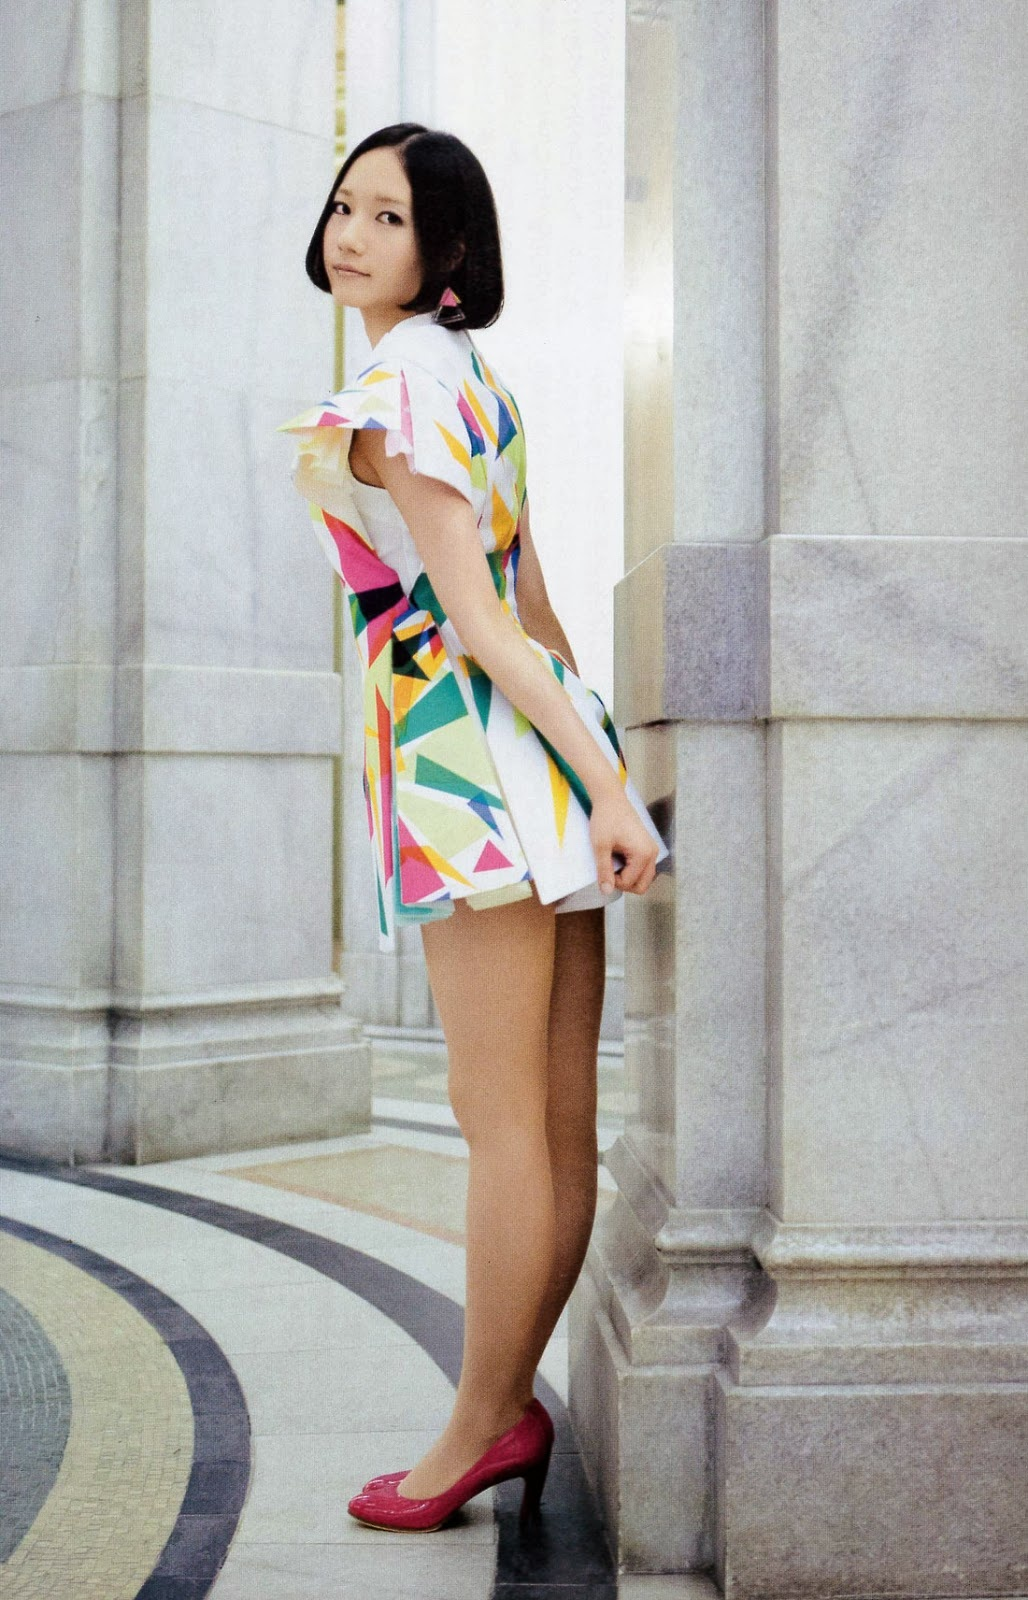 Iphone Wallpaper Size Nocchi Android Iphone Wallpaper 33563 Asiachan Kpop